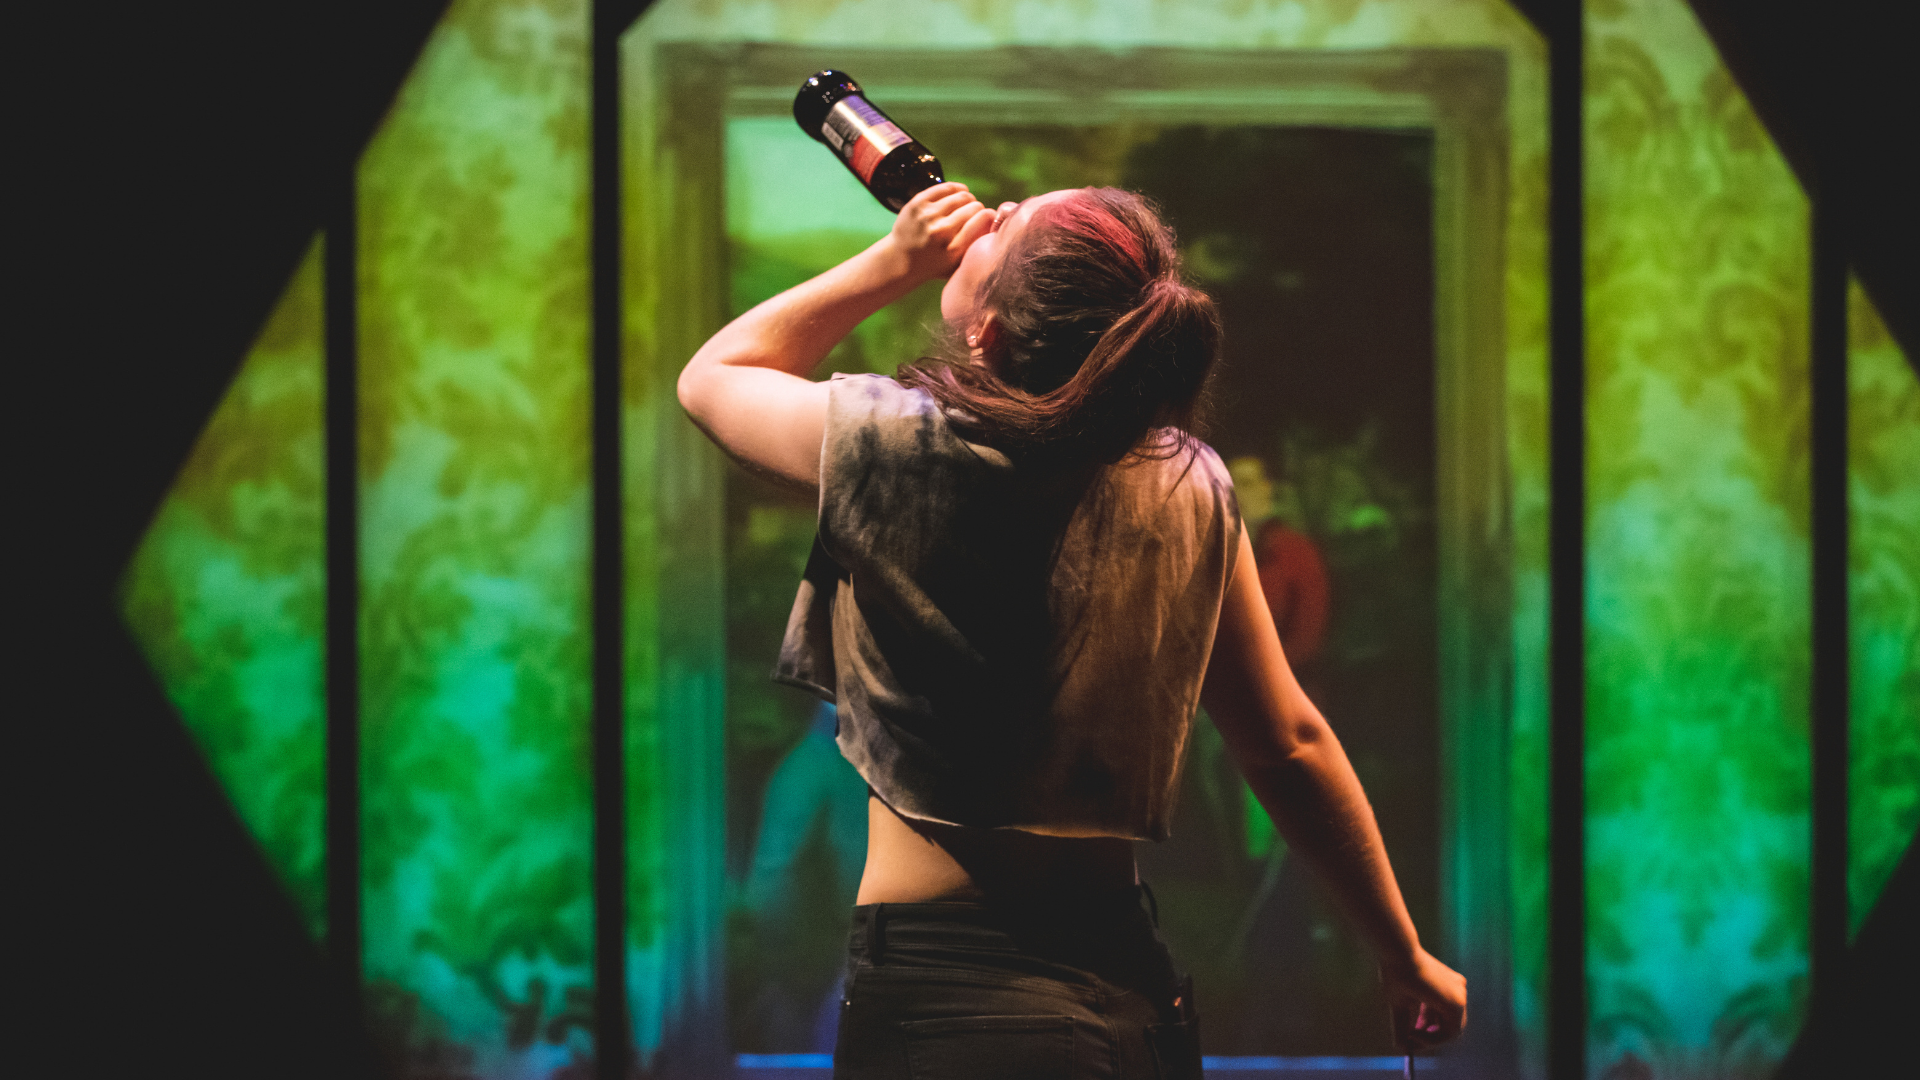 The Honey Man Production Photo: Misty (Amy Kennedy) dances and takes a swig from a bottle of beer, backlit by a colourful projection